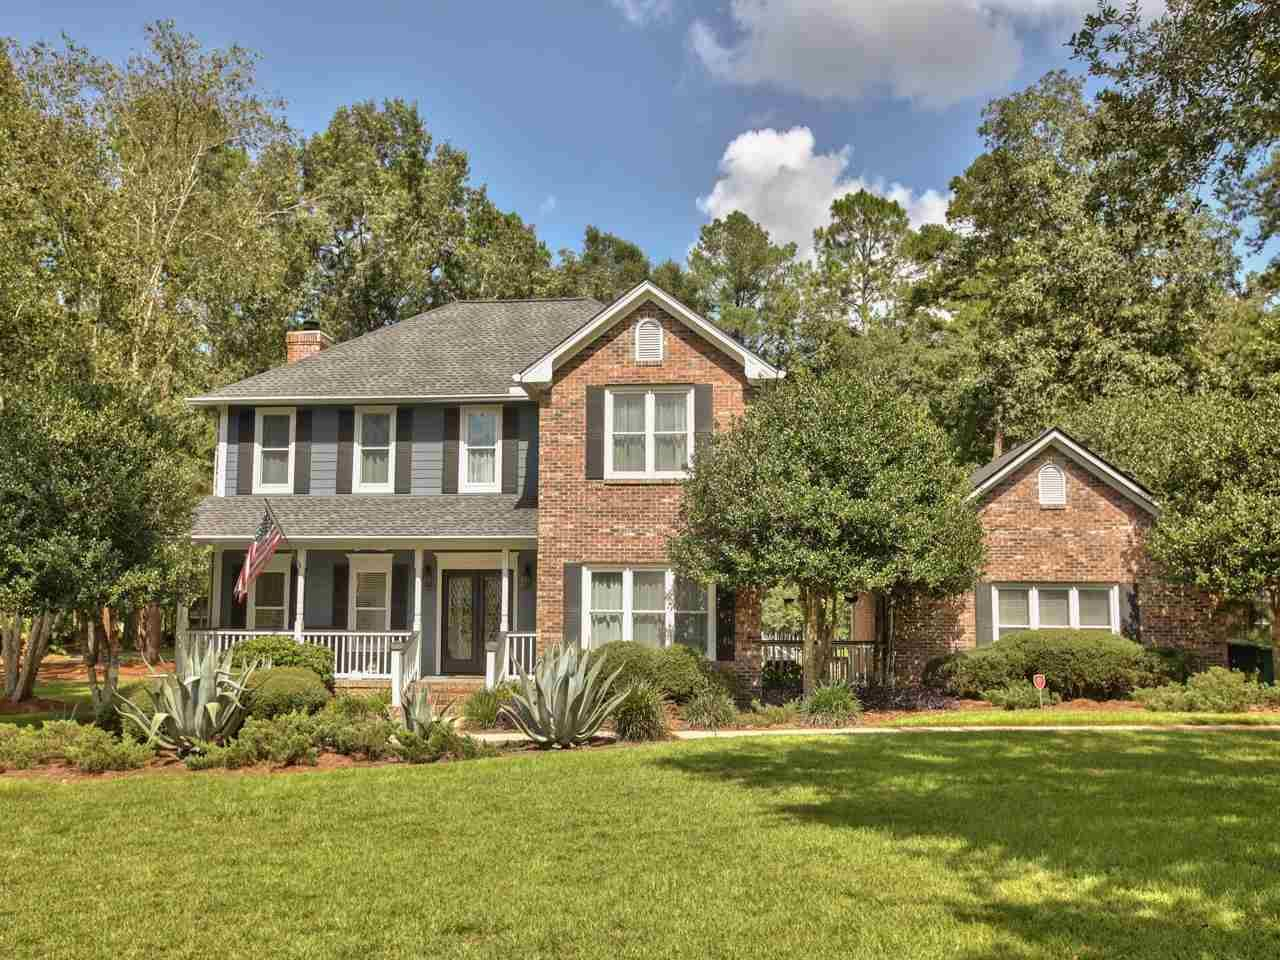 Photo of 8487 Congressional Drive, TALLAHASSEE, FL 32312 (MLS # 323229)